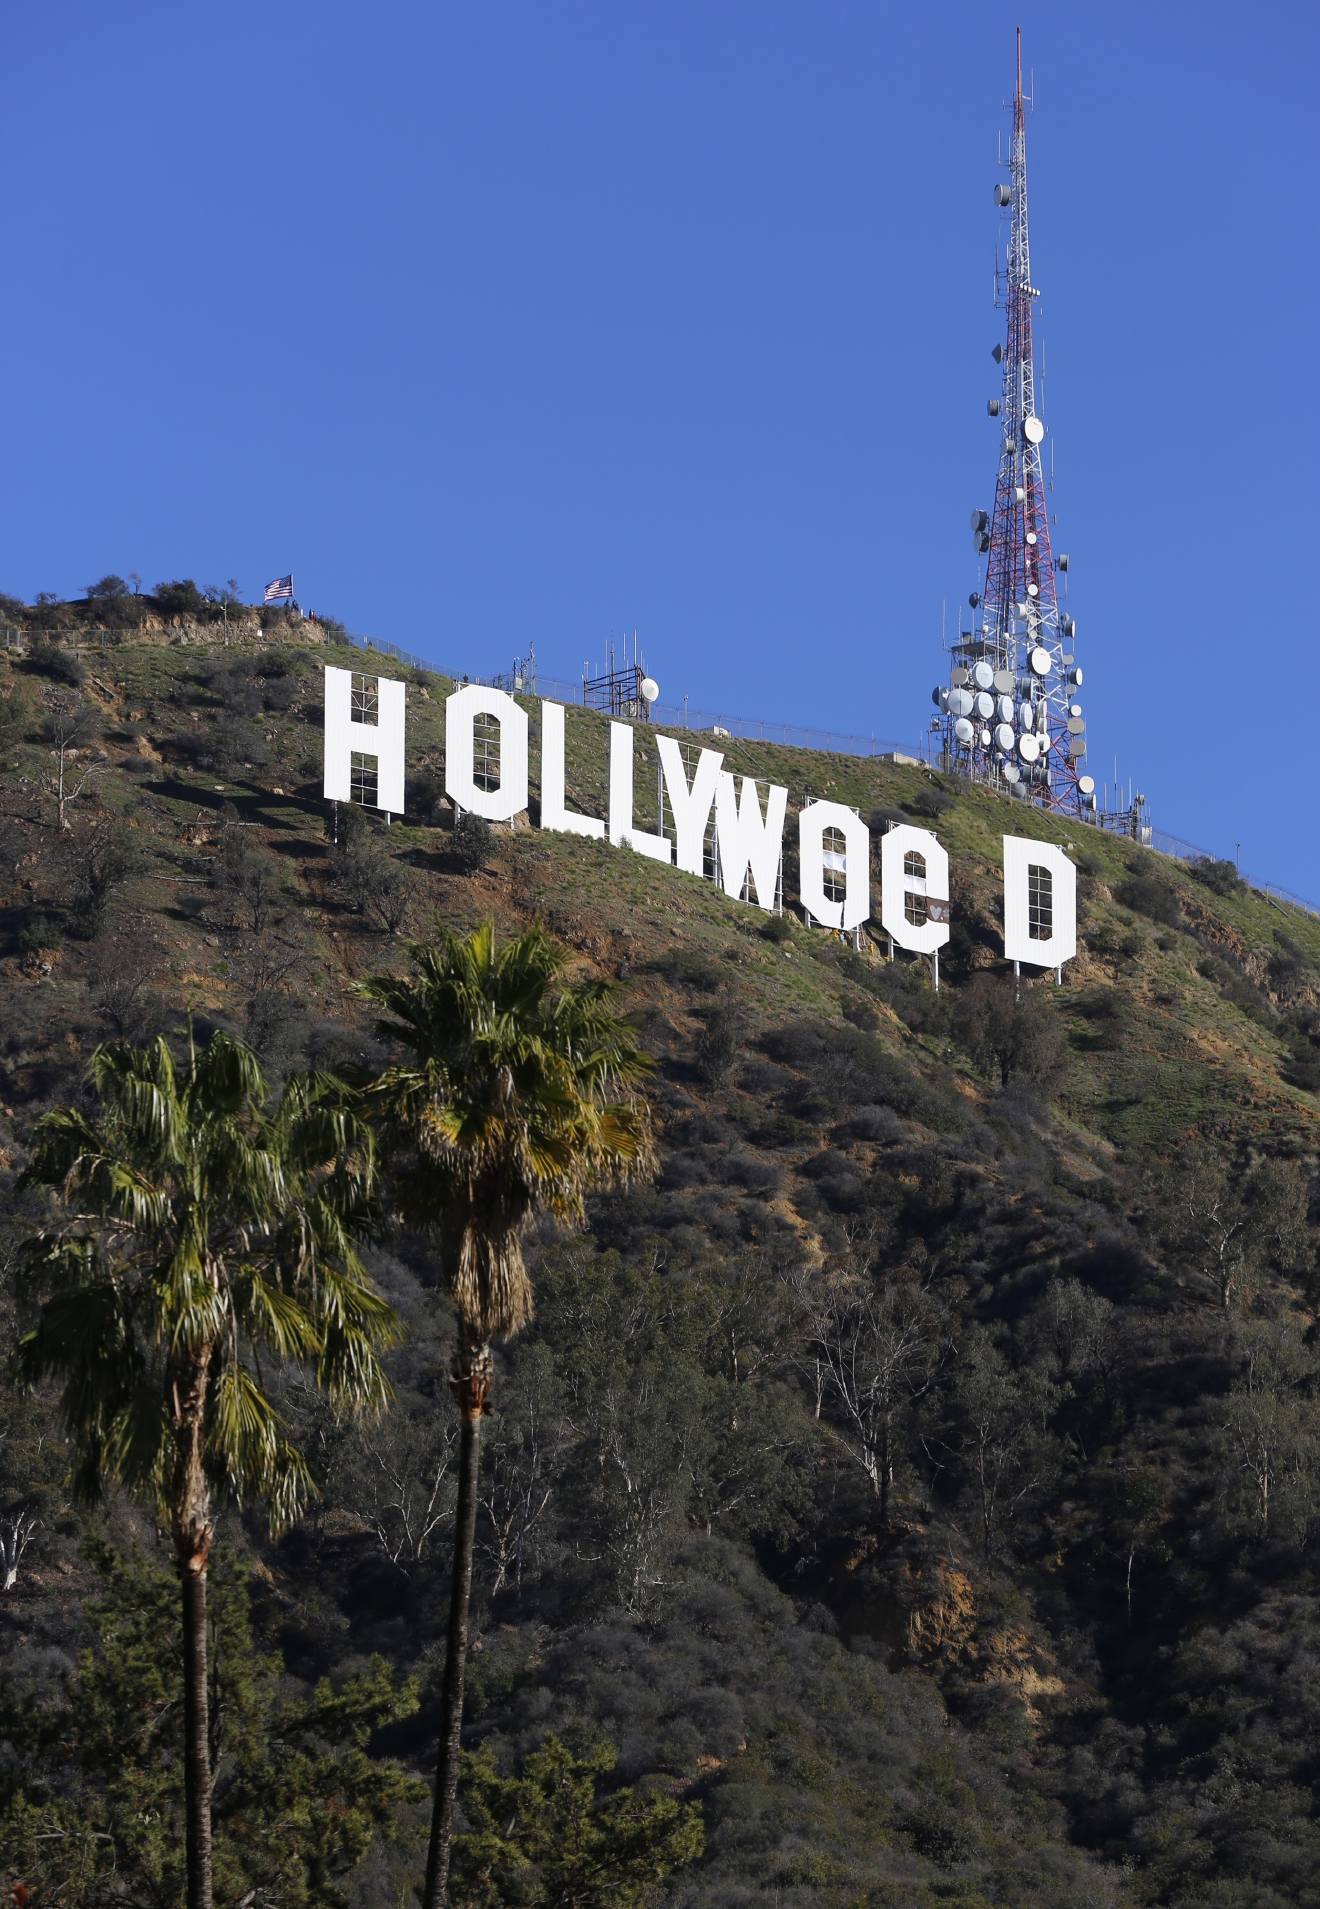 "The Hollywood sign is seen vandalized Sunday, Jan. 1, 2017. Los Angeles residents awoke New Year's Day to find a prankster had altered the famed Hollywood sign to read ""HOLLYWeeD."" Police have notified the city's Department of General Services, whose officers patrol Griffith Park and the area of the rugged Hollywood Hills near the sign. California voters in November approved Proposition 64, which legalized the recreational use of marijuana, beginning in 2018. (AP Photo/Damian Dovarganes)"